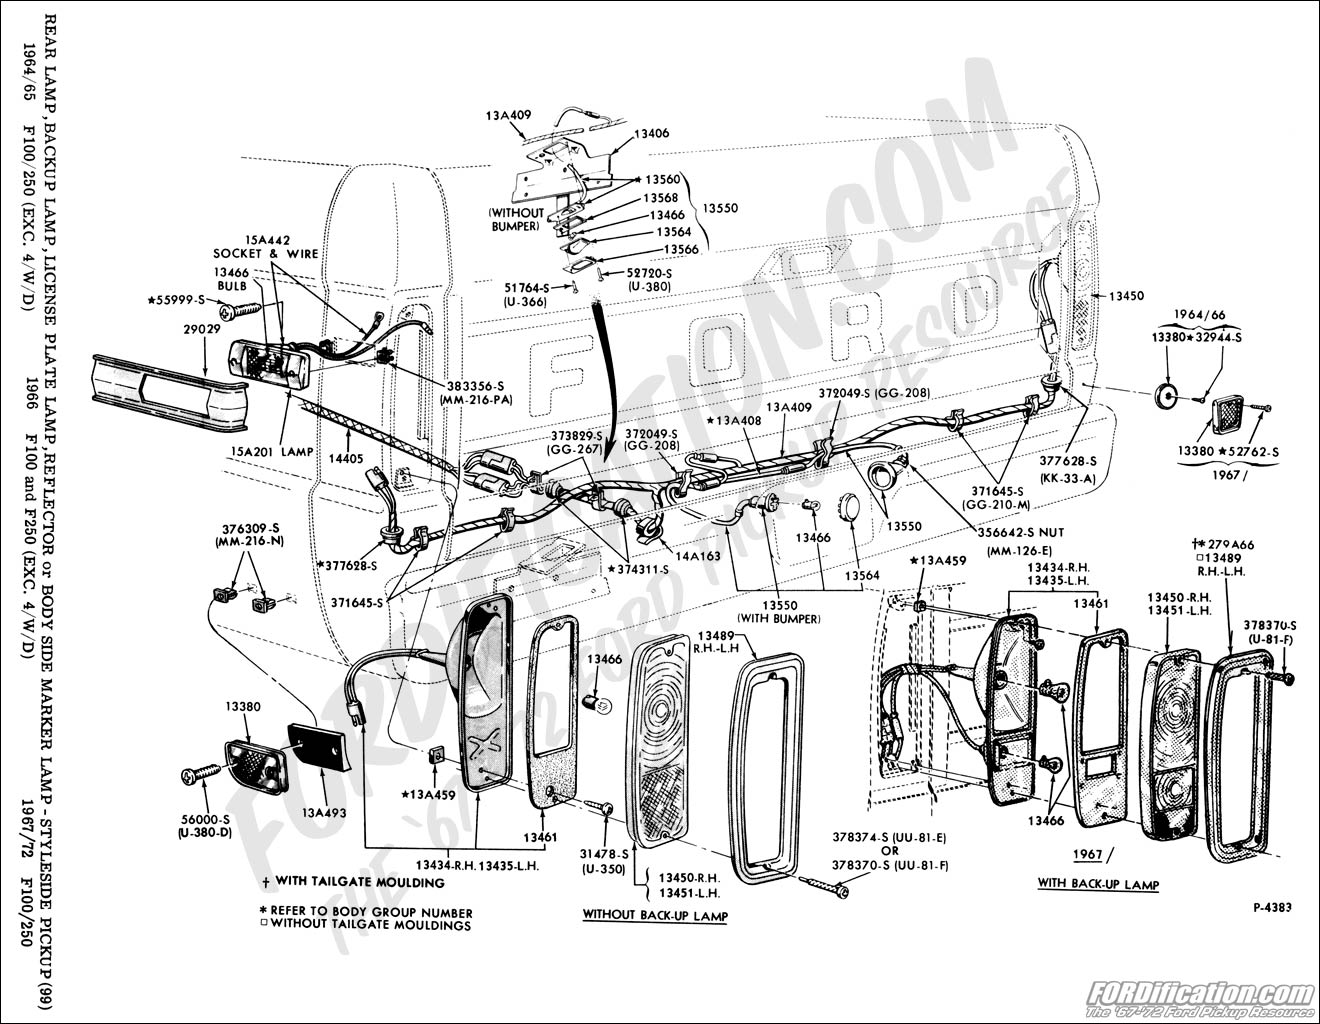 Wildfire 49cc Wiring Diagram -Aprilaire Thermostat Wiring Diagram | Begeboy Wiring  Diagram Source | Wildfire Wfh50 S2 Scooter Wiring Diagram |  | Begeboy Wiring Diagram Source